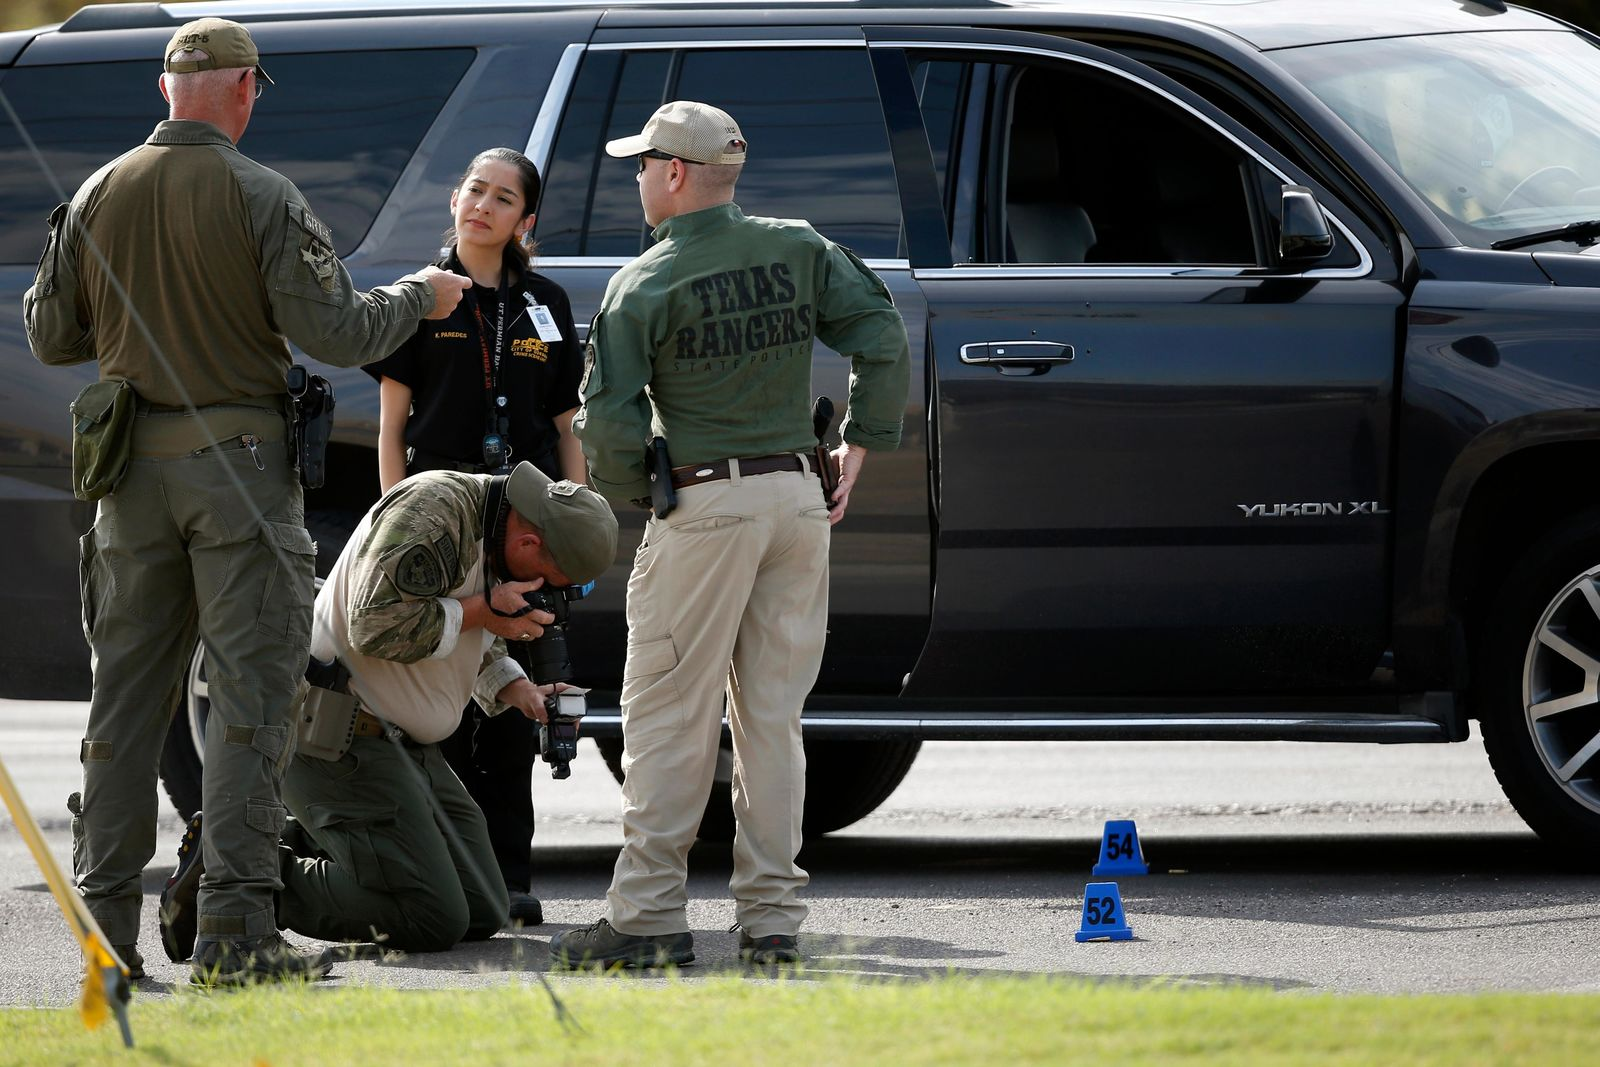 Law enforcement officials process a scene involved in Saturday's shooting, Sunday, Sept. 1, 2019, in Odessa, Texas. The death toll in the West Texas shooting rampage increased  Sunday as authorities investigated why a man stopped by state troopers for failing to signal a left turn opened fire on them and fled, shooting more than a dozen people as he drove before being killed by officers outside a movie theater.  (AP Photo/Sue Ogrocki)